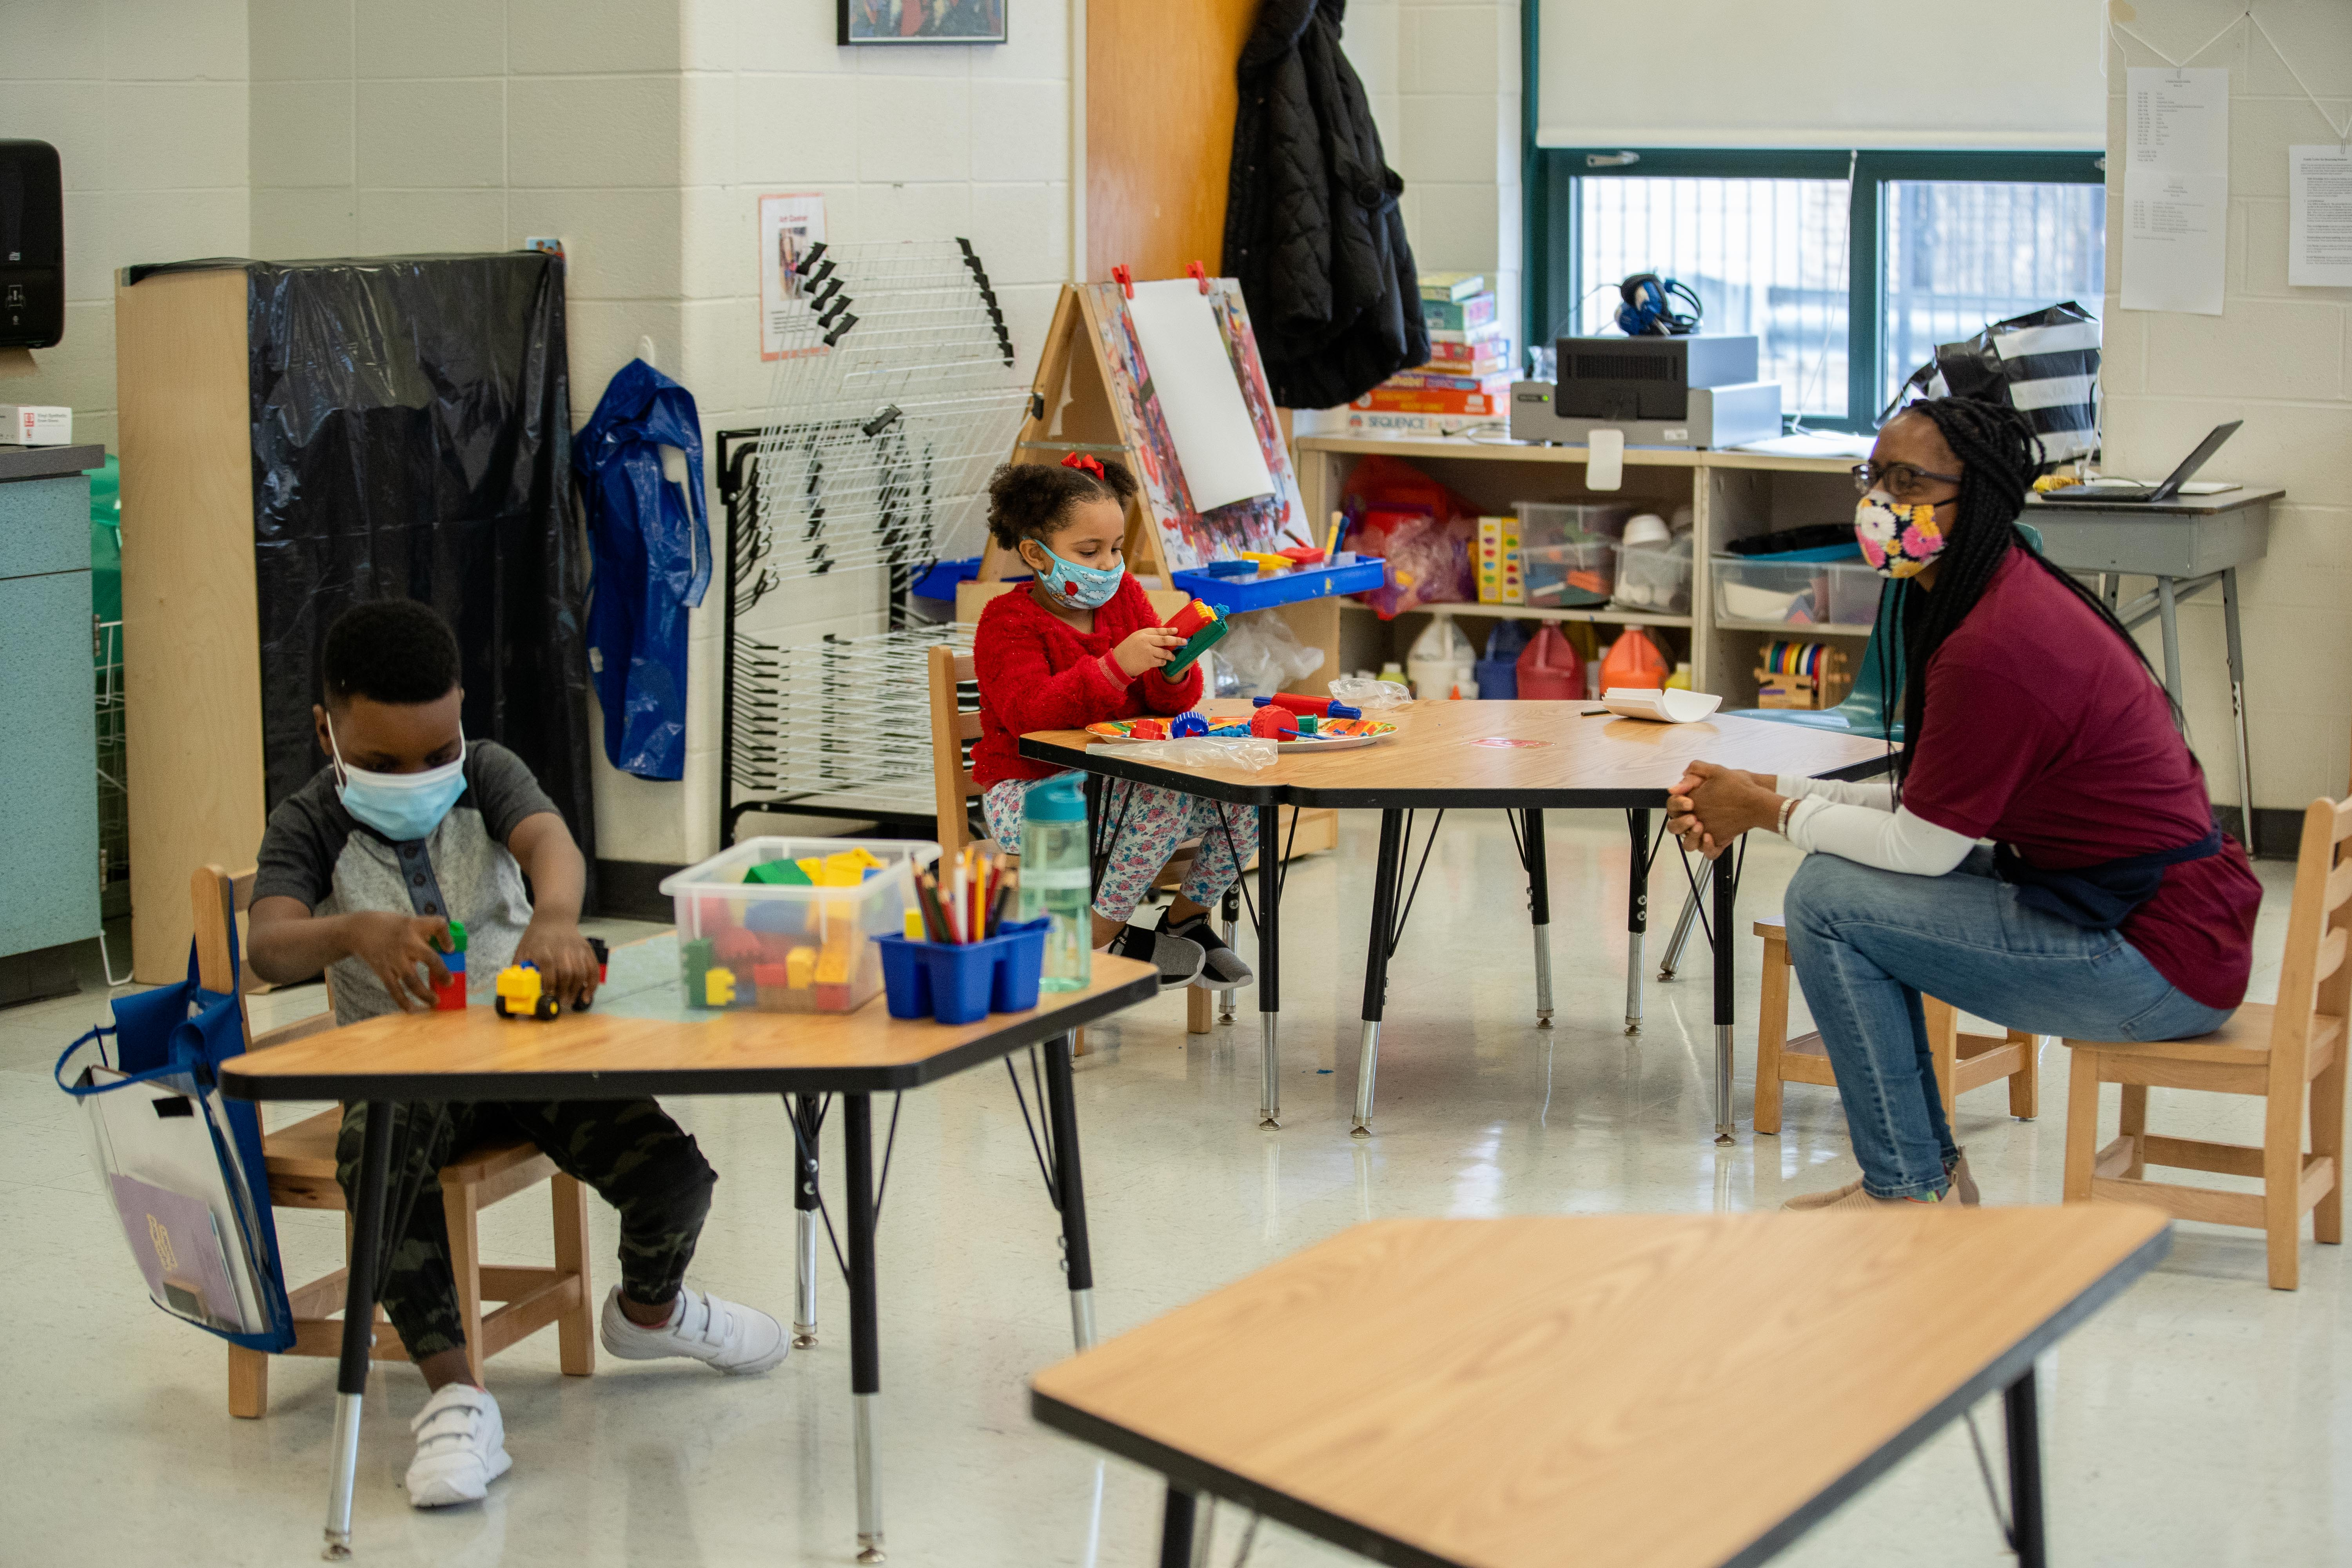 Students attend a class at Jordan Community Elementary School in the Rogers Park neighborhood, Friday morning, Jan. 15, 2021. Nineteen out of 58 pre-k students at Jordan Community Elementary School are participating in in-person learning, according to Principal Gilberto Piedrahíta.